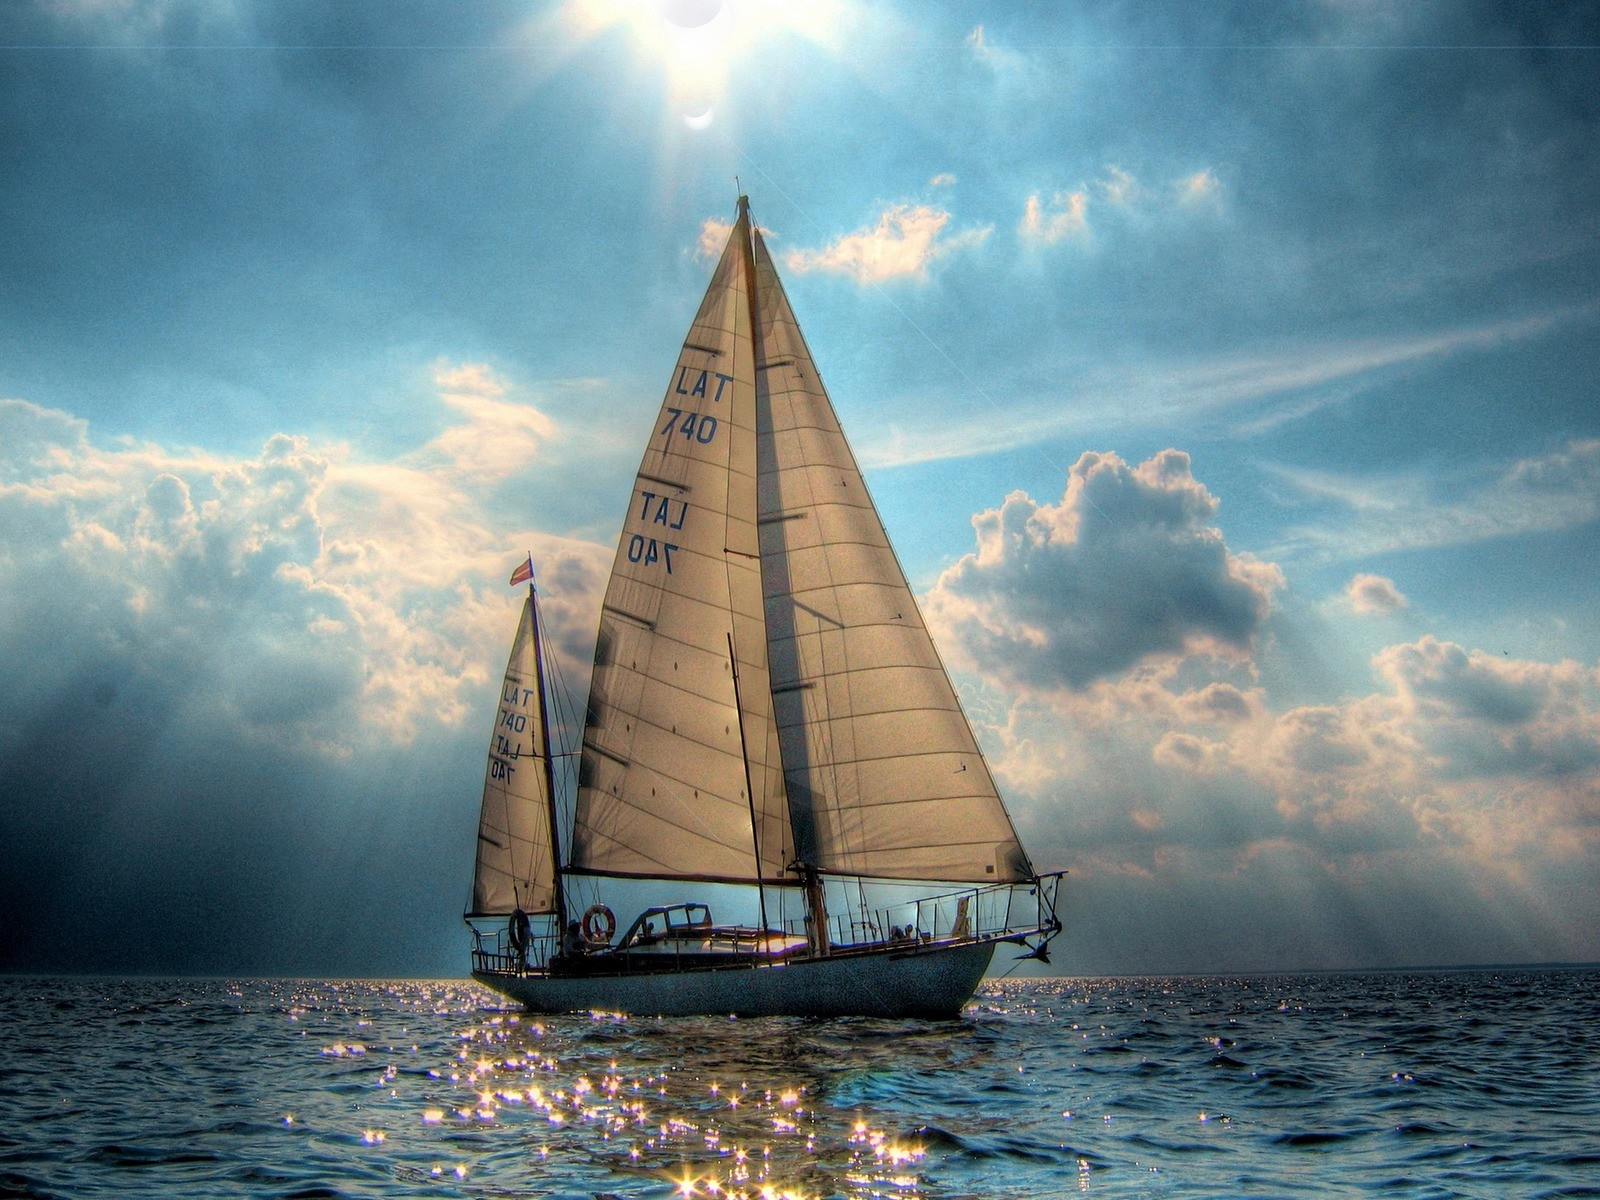 hungry for sailboat wallpaper - photo #15